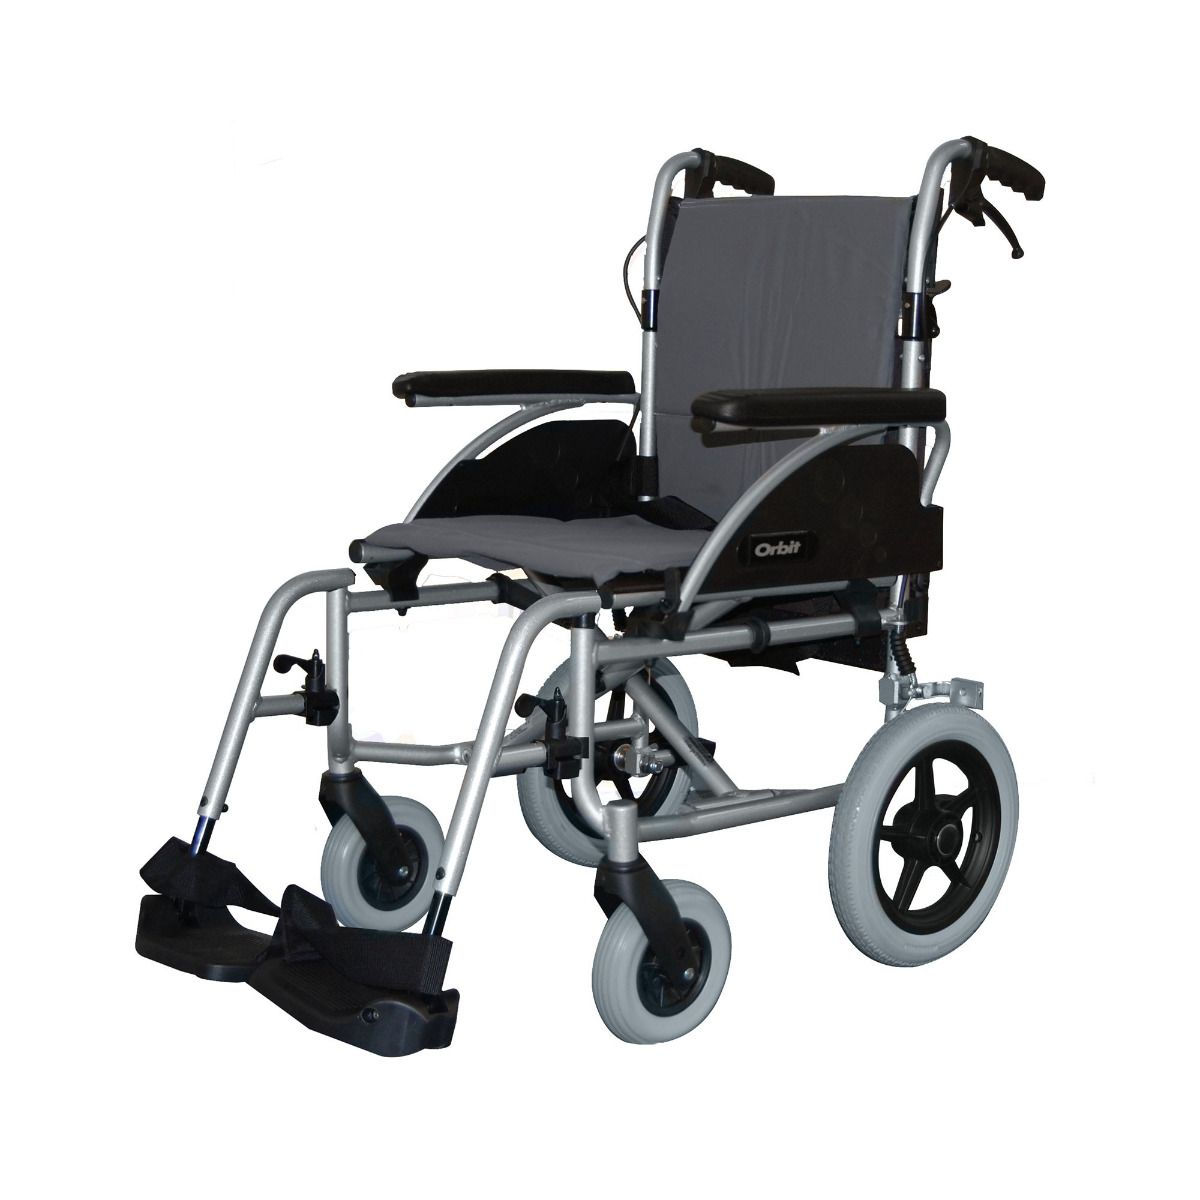 Roma Medical Orbit Lightweight Car Transit Wheelchair viewed fro mthe side angle